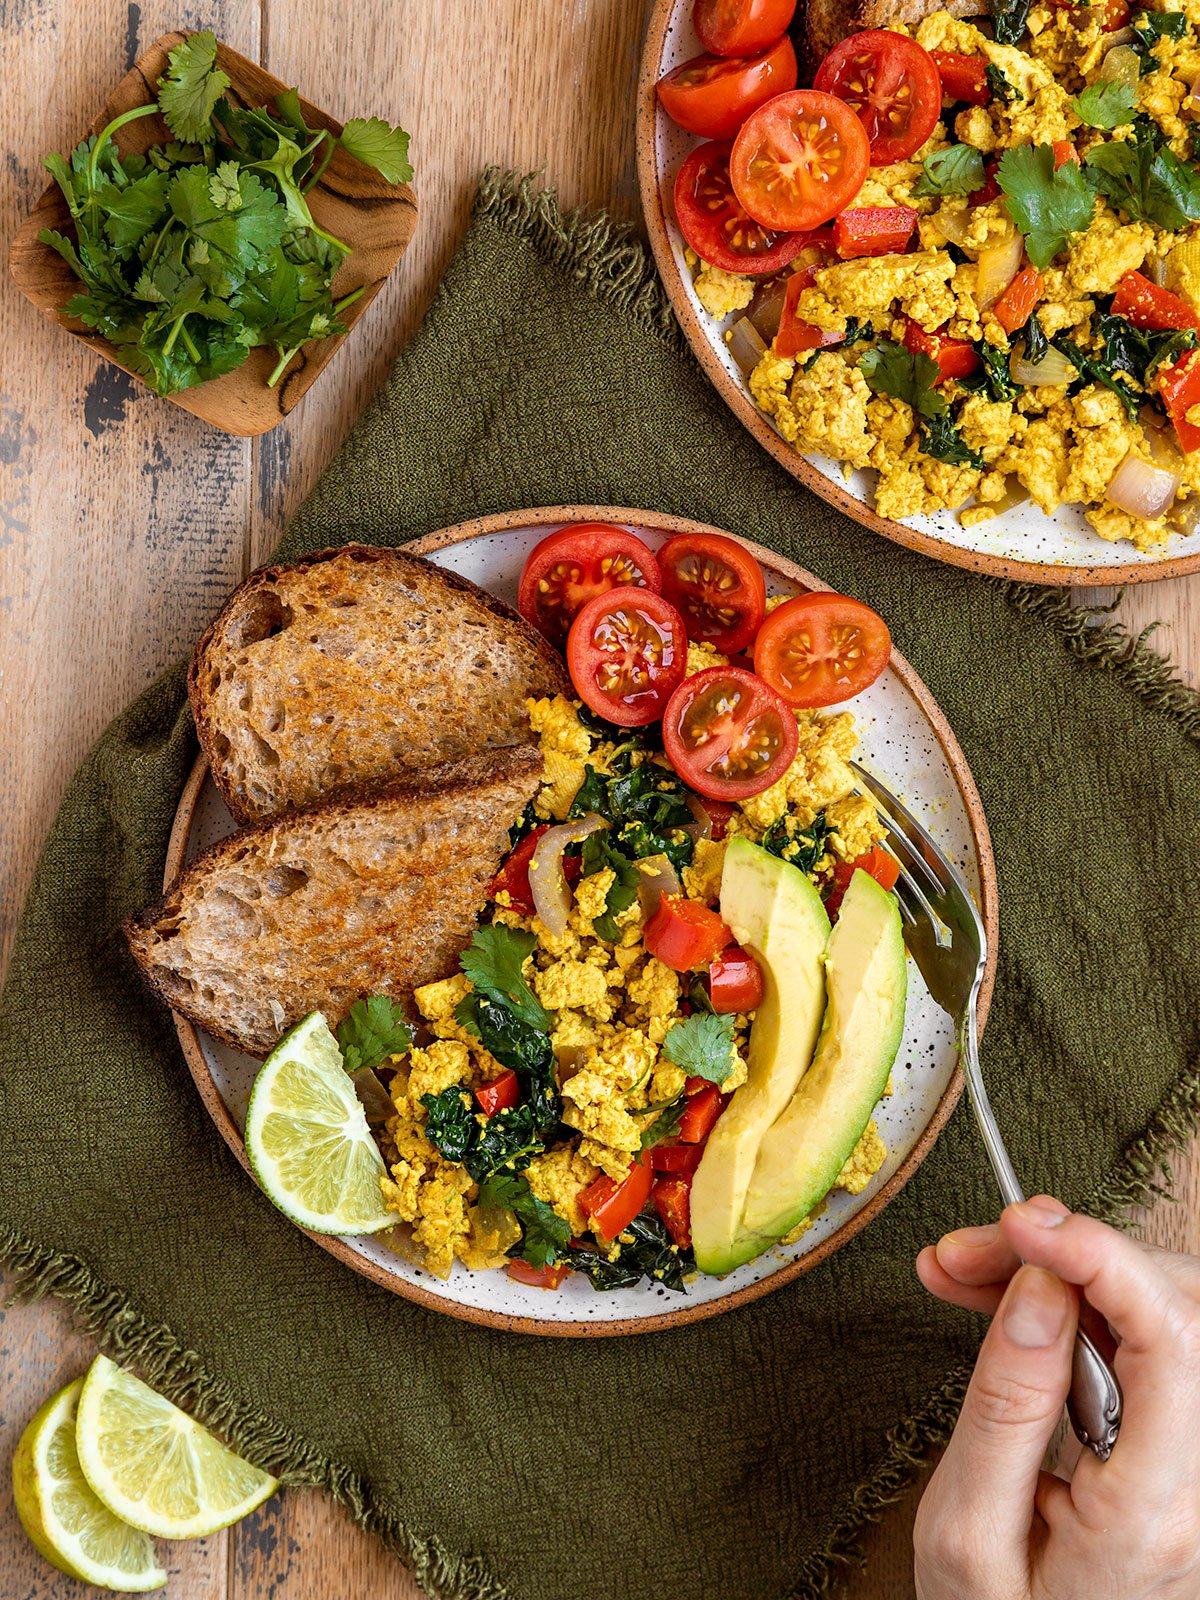 overhead shot of hand digging into plate of scrambled tofu, avocado, tomatoes, and toast